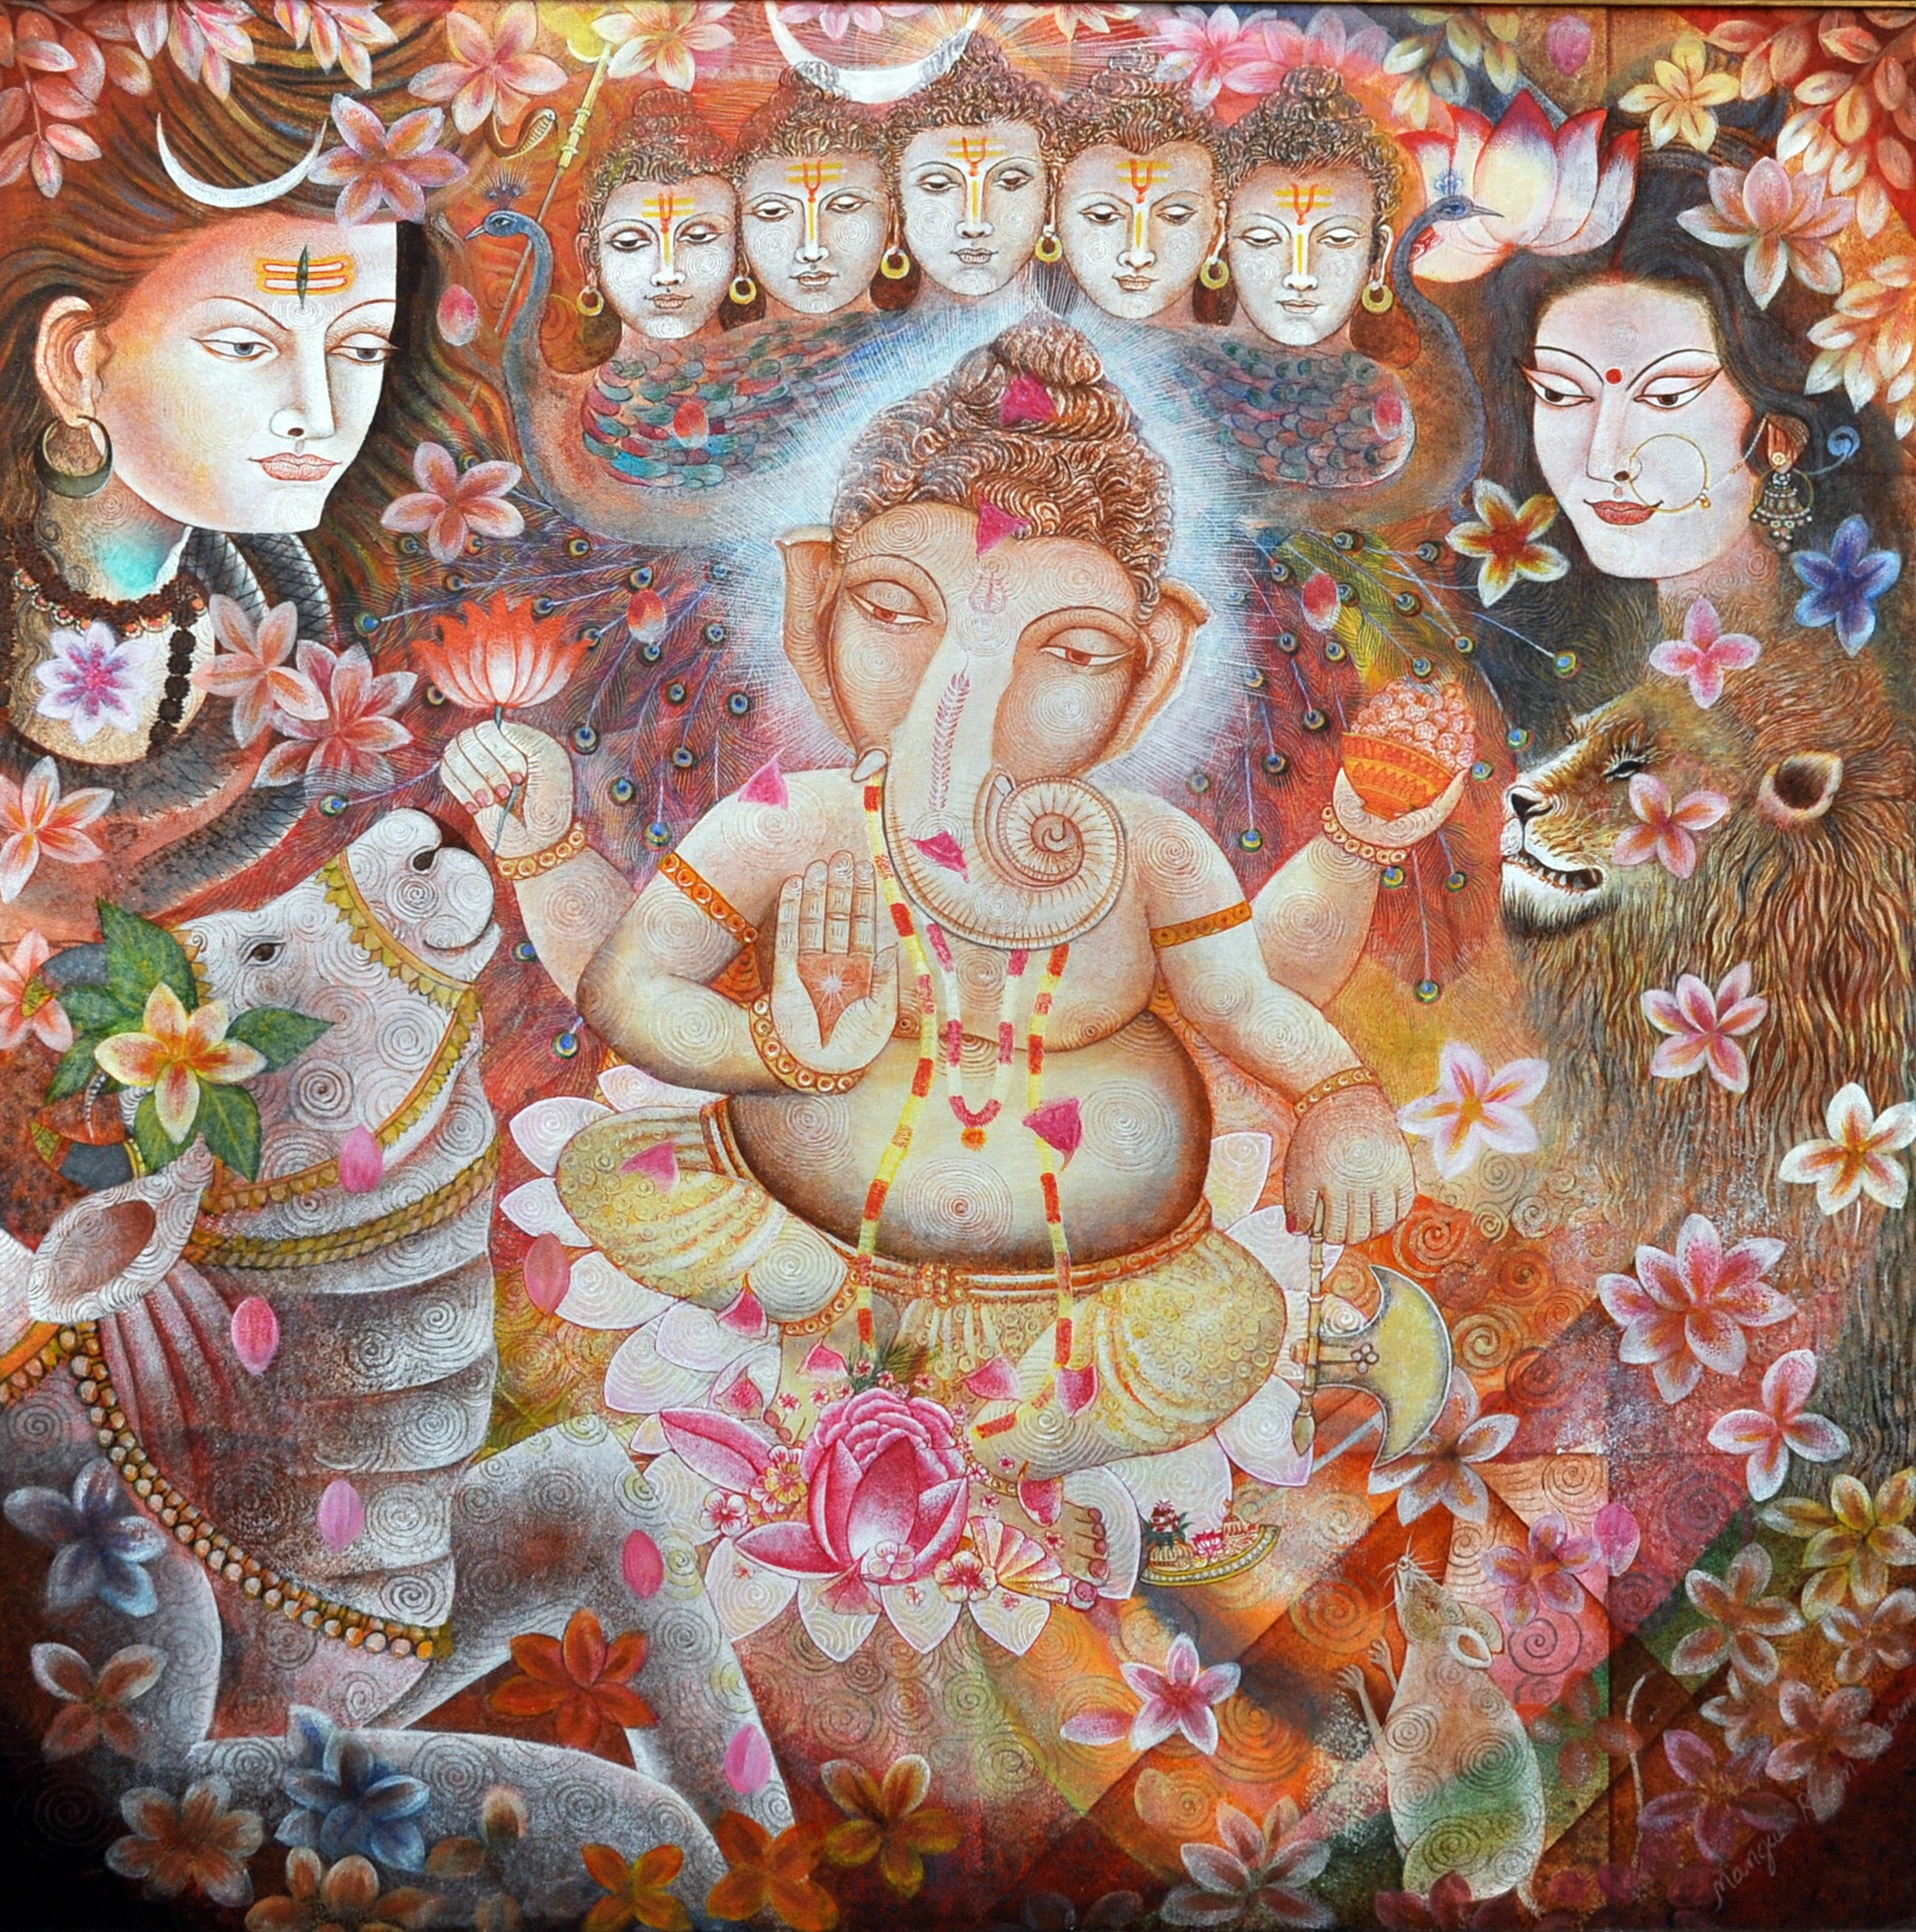 Family of Ganesha